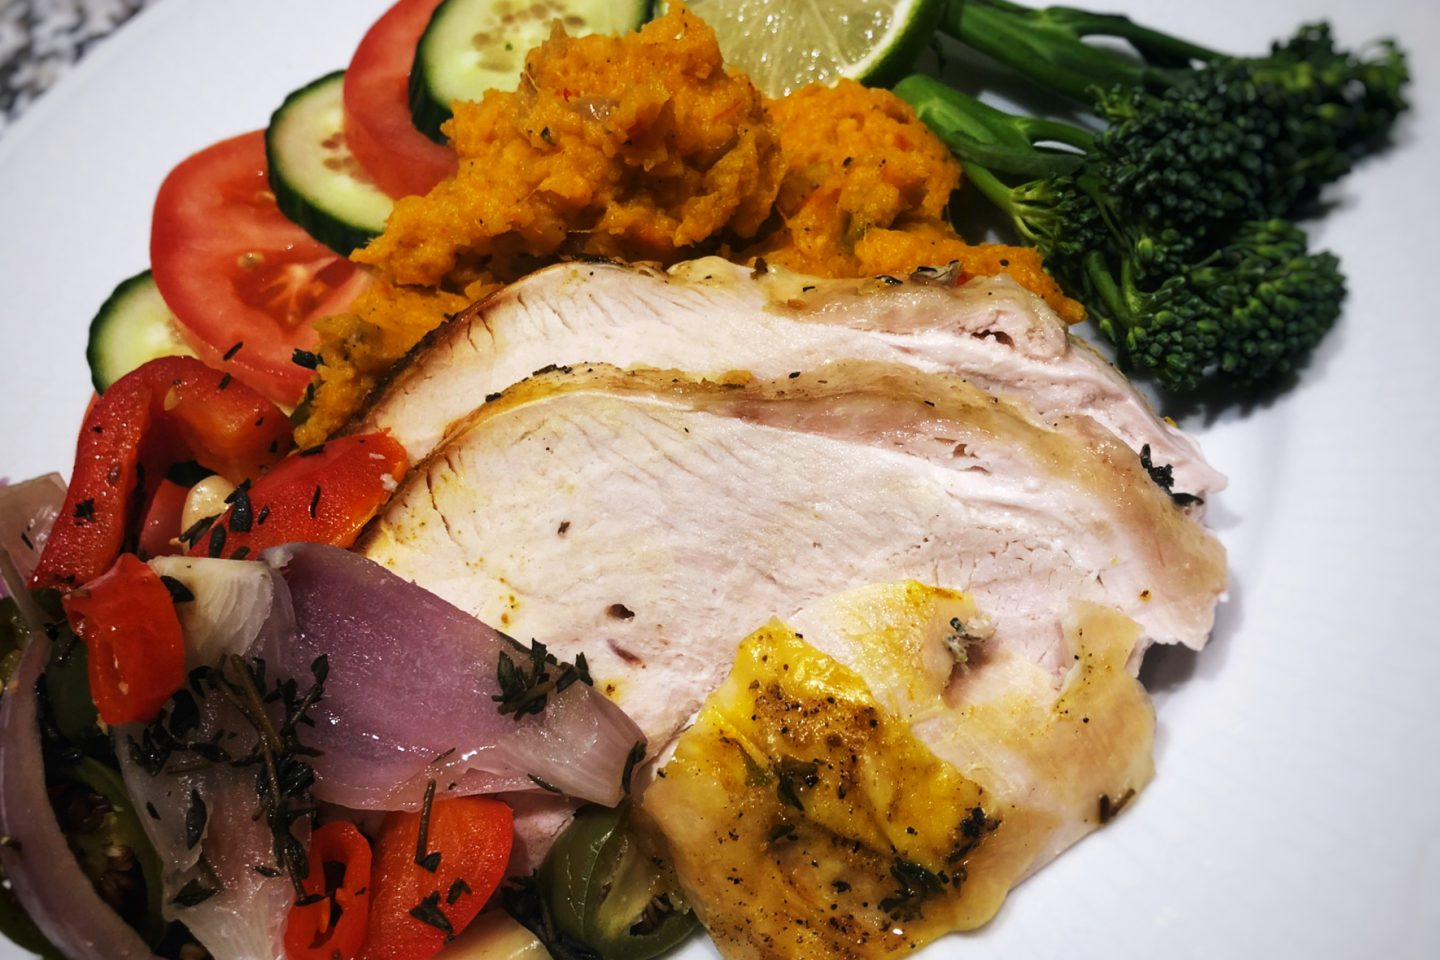 Easy to make, tasty and healthy turkey